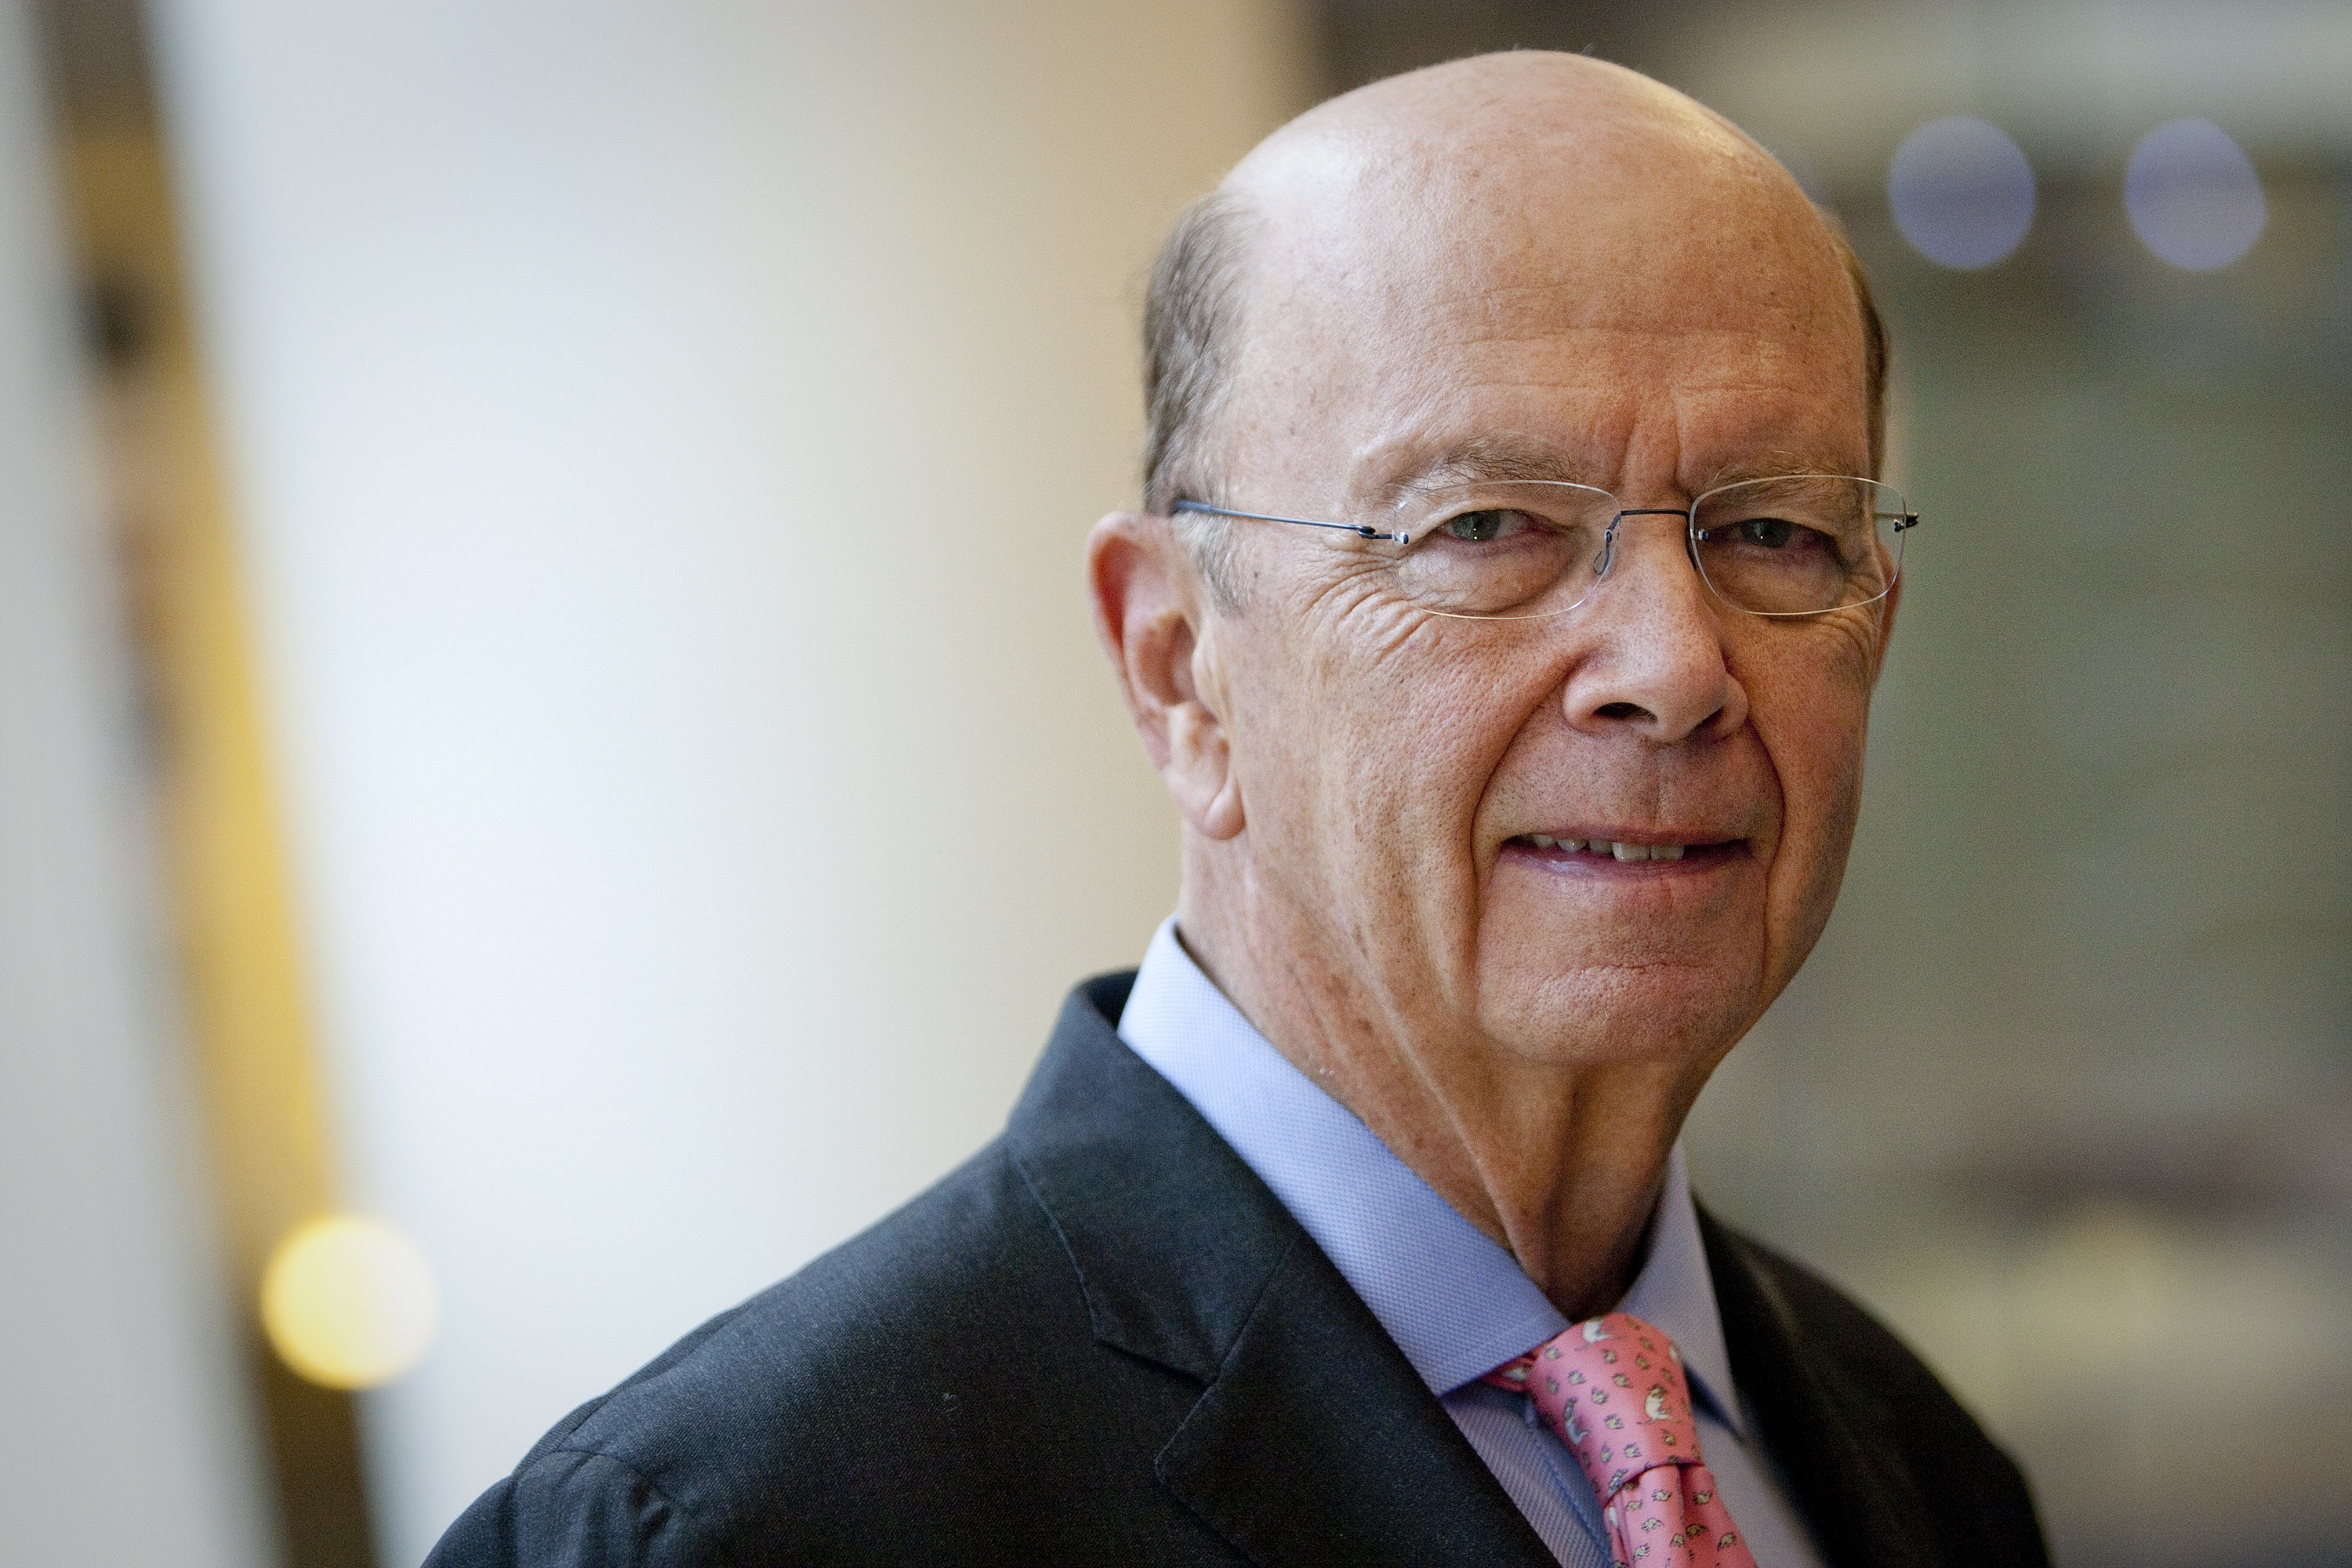 Wilbur Ross Ethnicity, Race, and Nationality